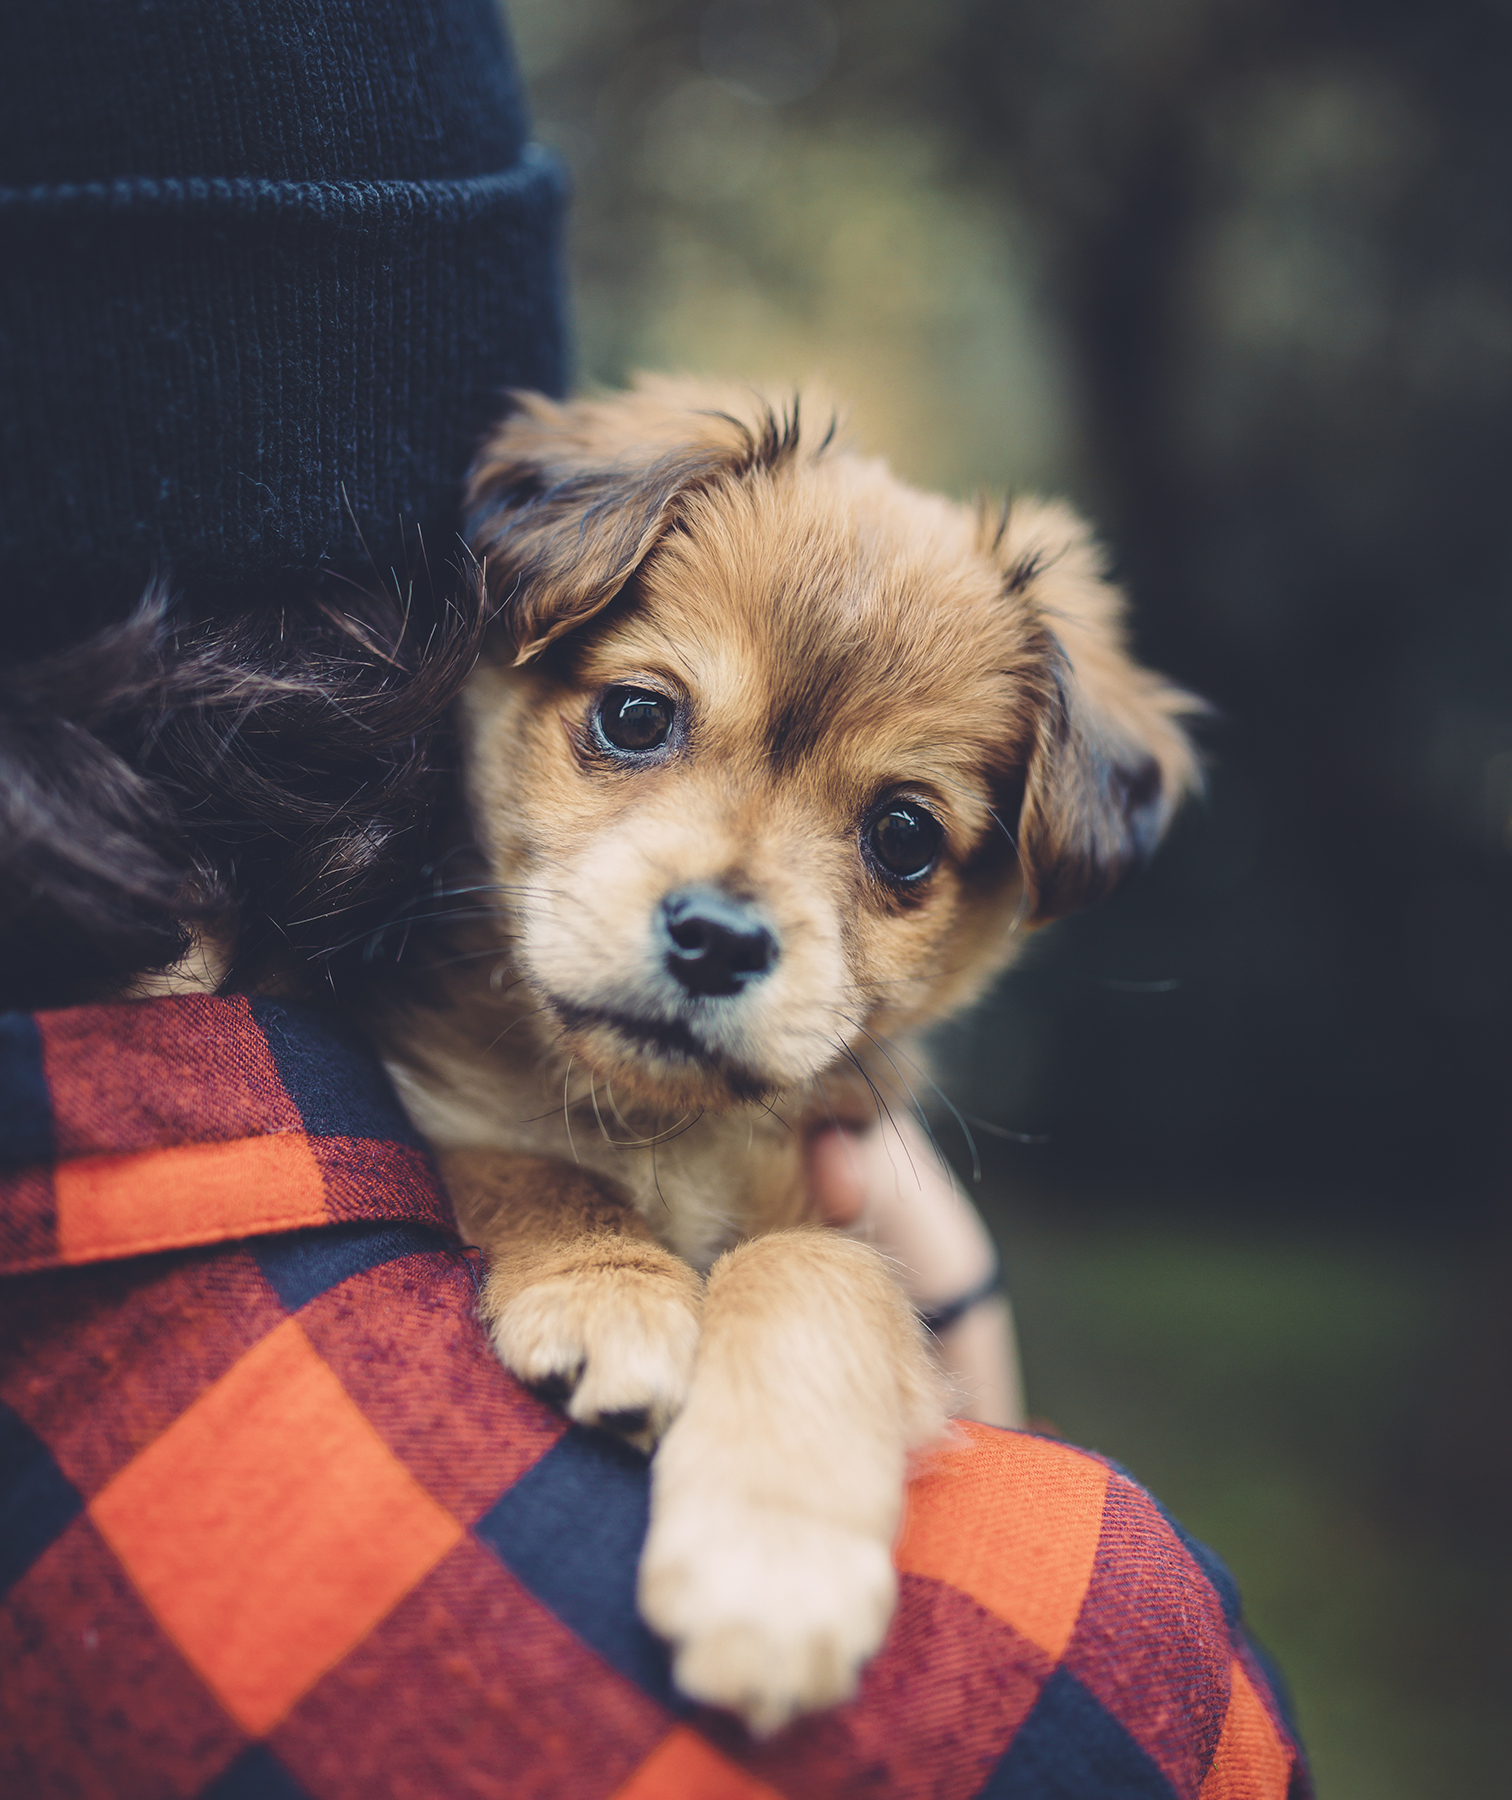 Puppy on woman's shoulder